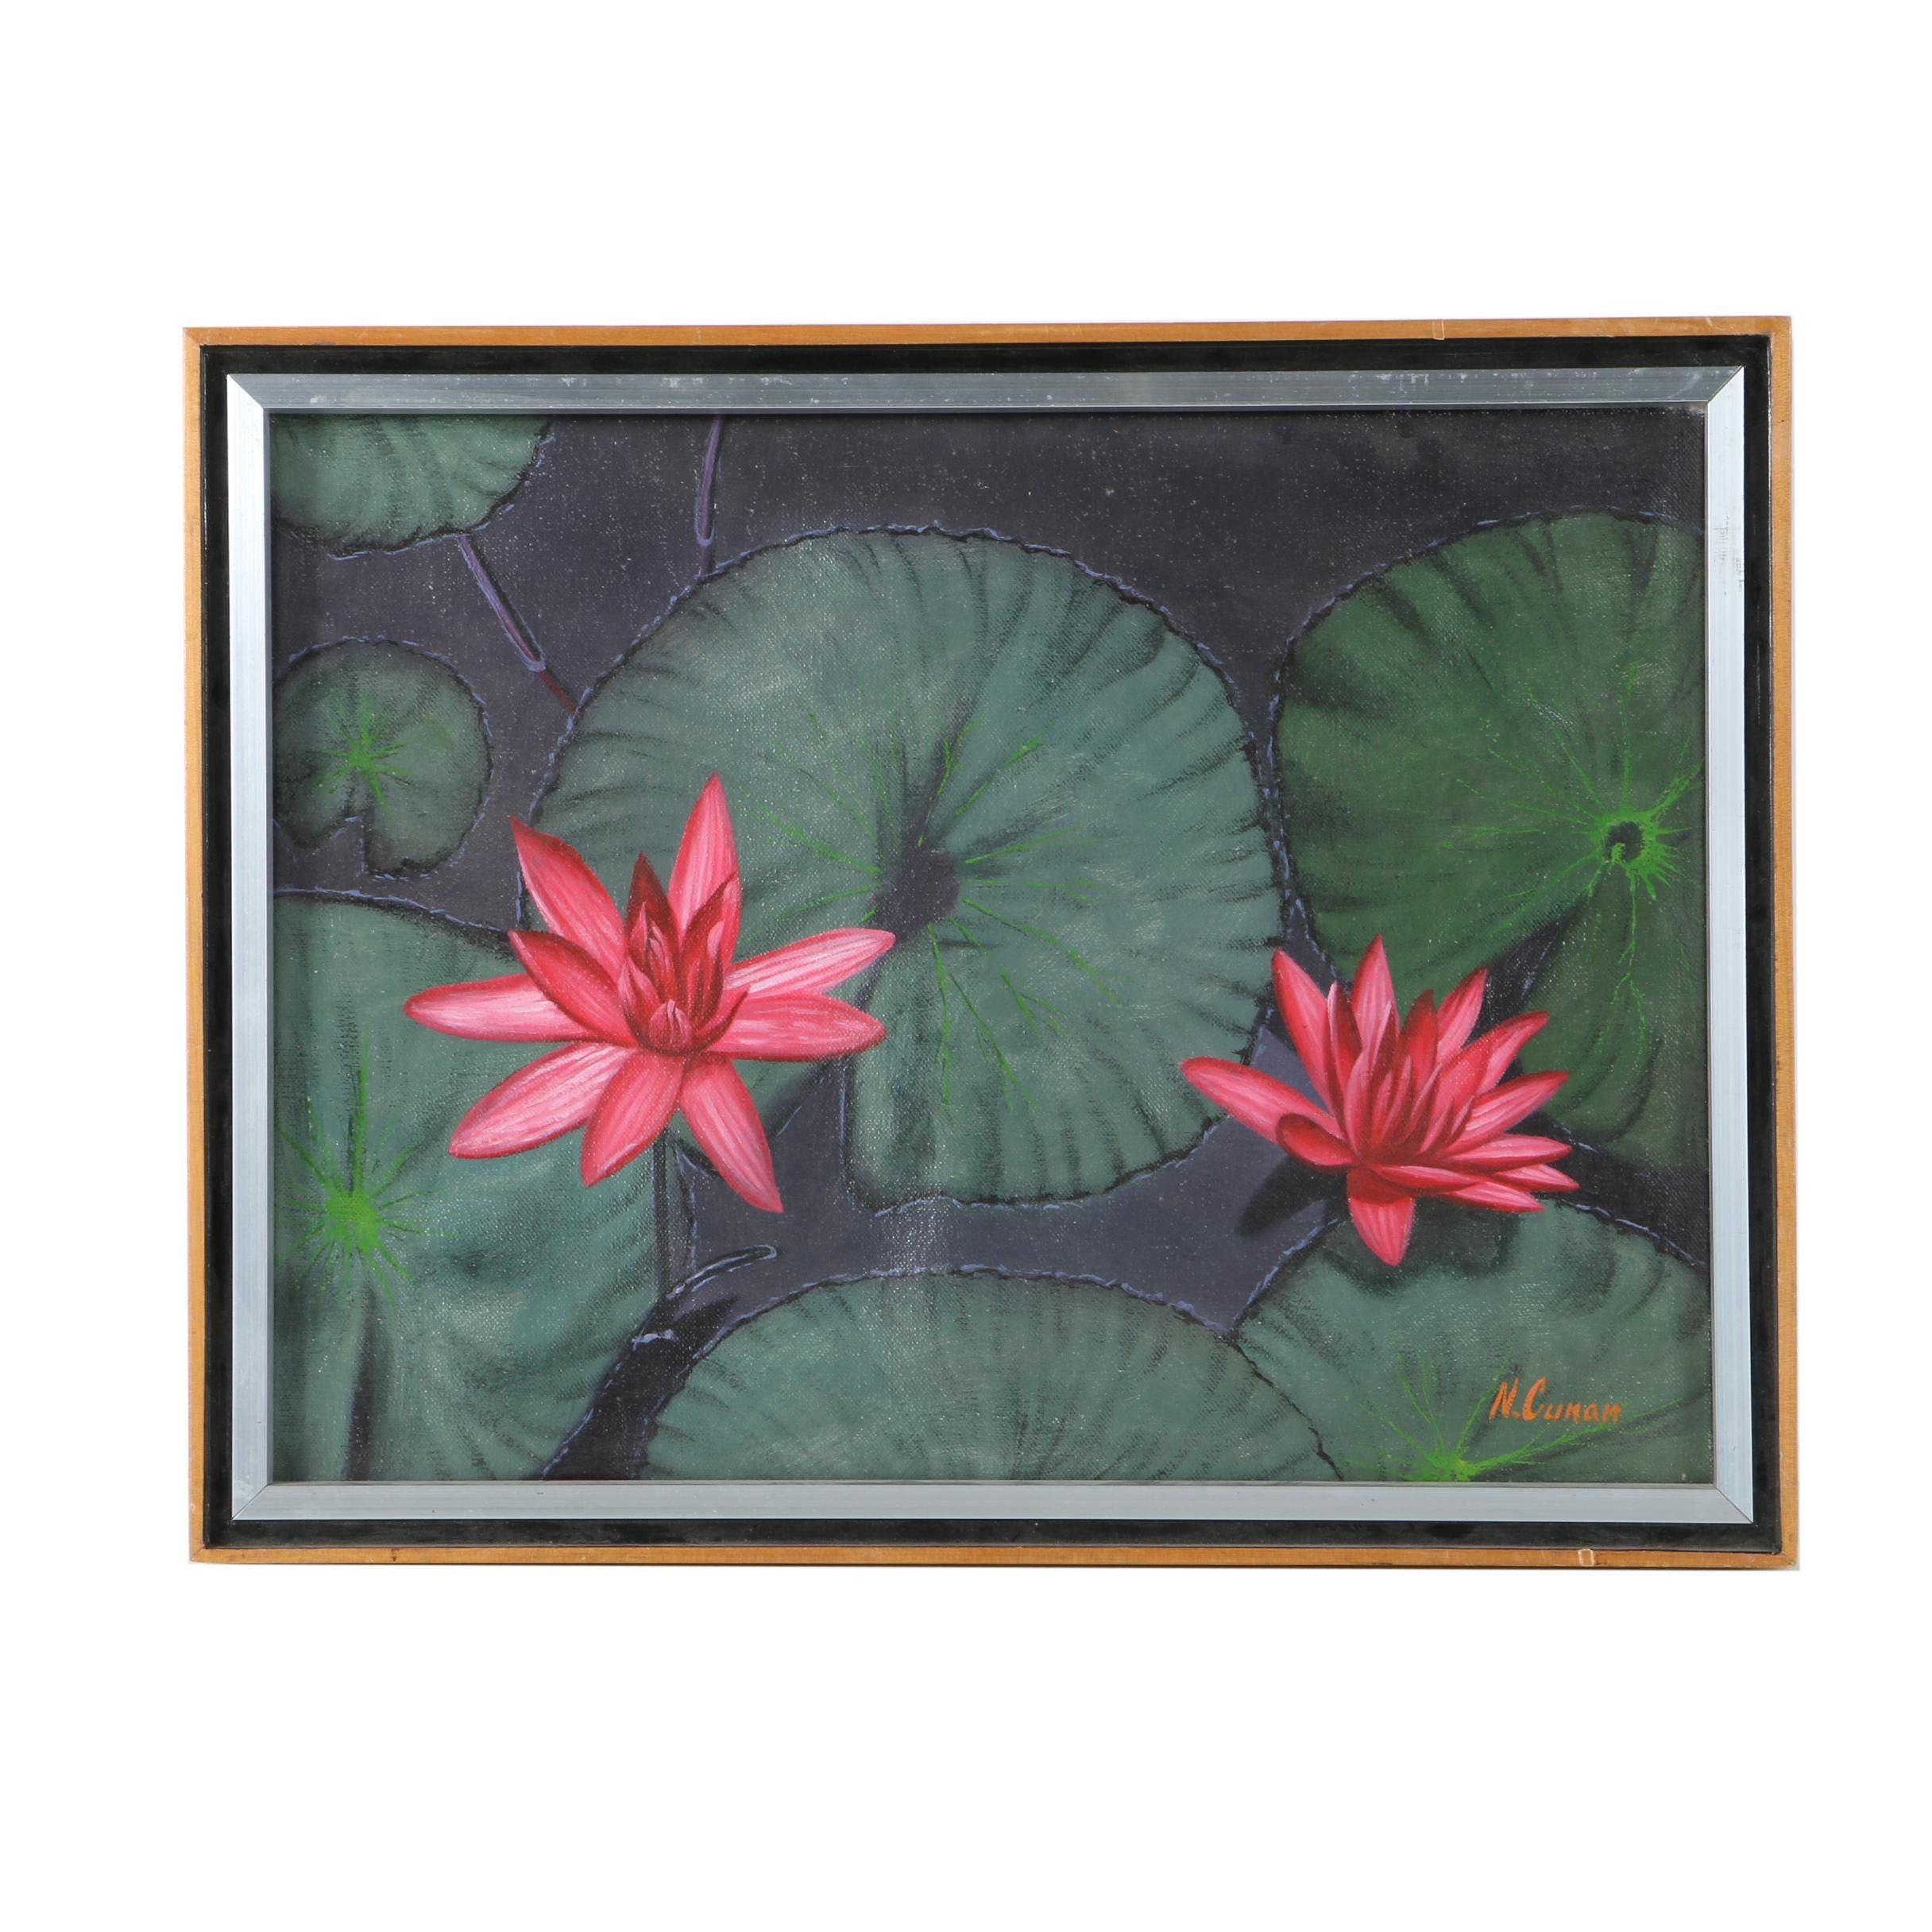 N. Cunan Oil Painting on Canvas of Waterlilies